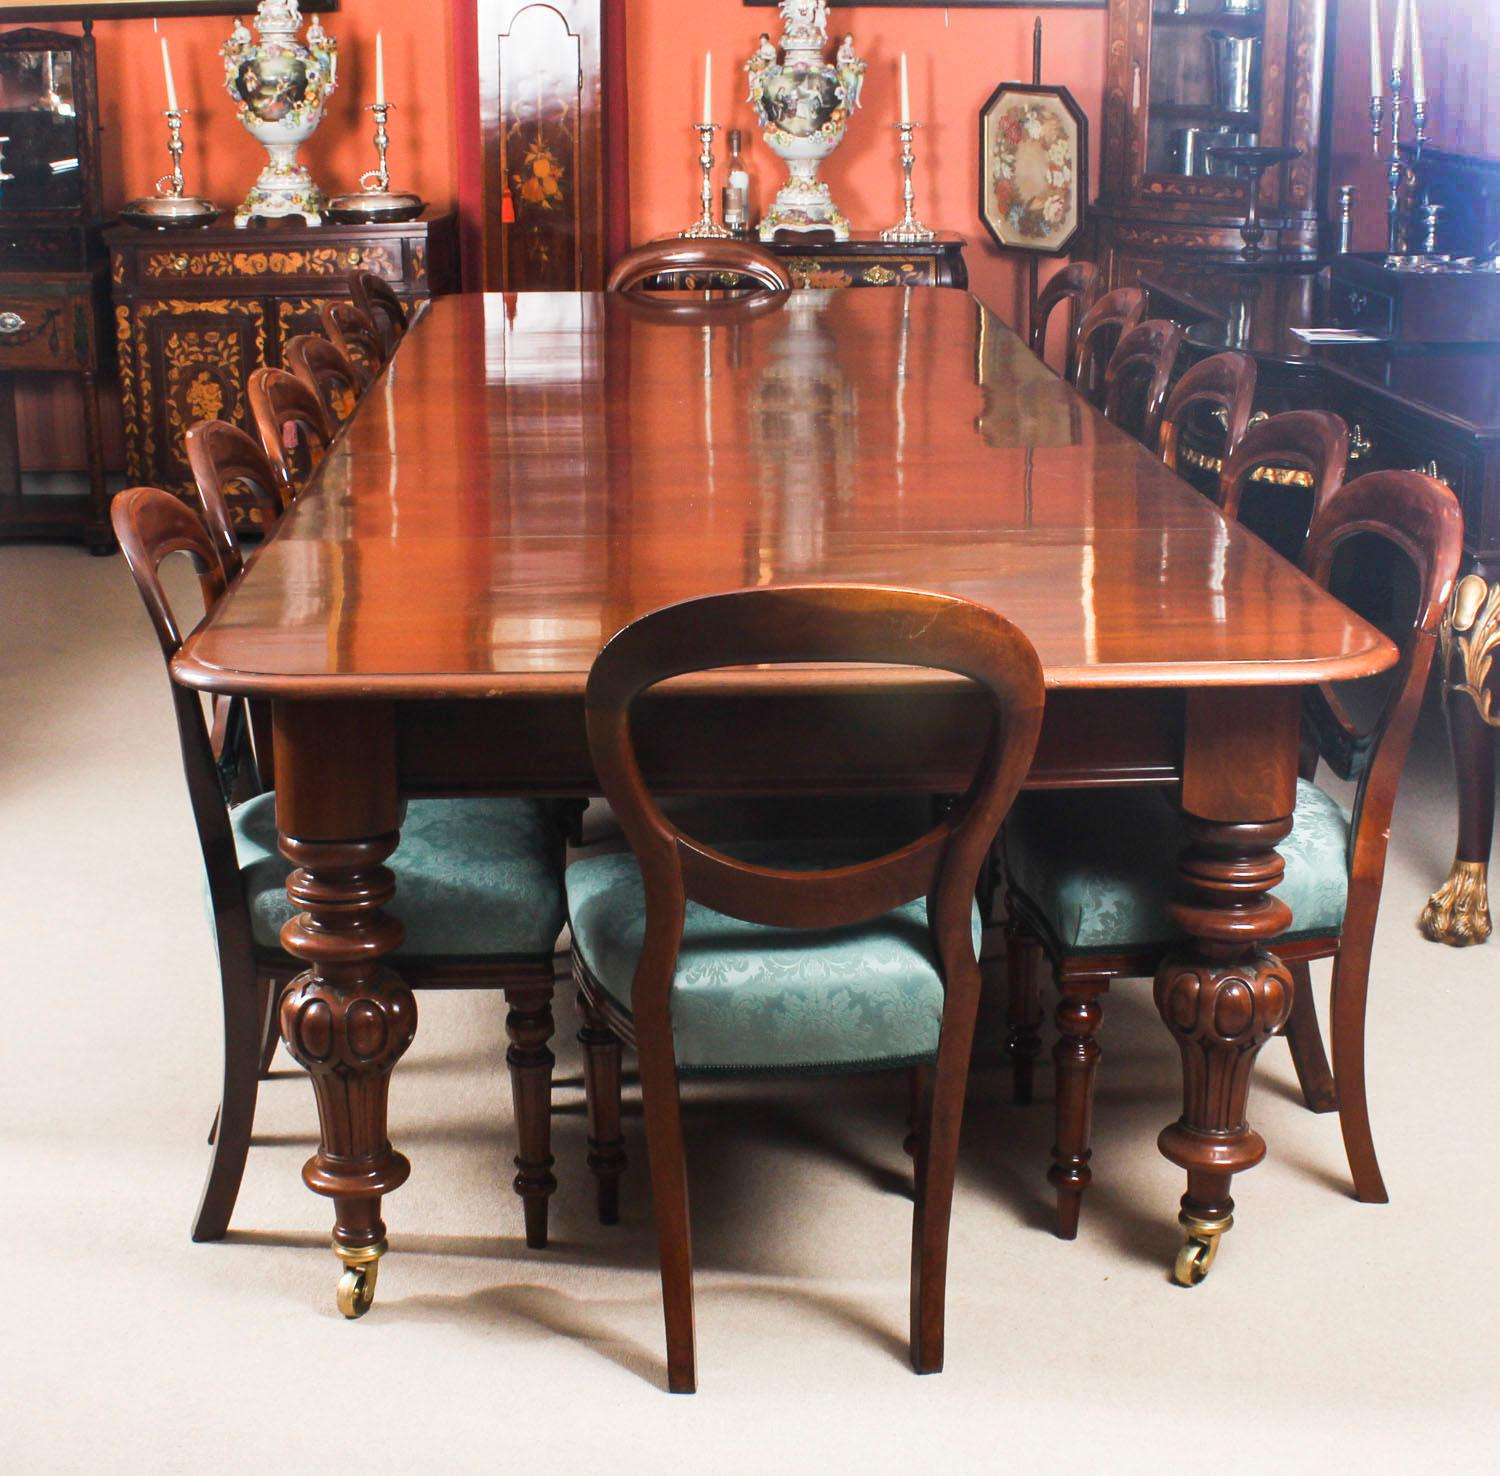 Merveilleux 19th Century Victorian Flame Mahogany Dining Table And 14 Antique Chairs  For Sale At 1stdibs